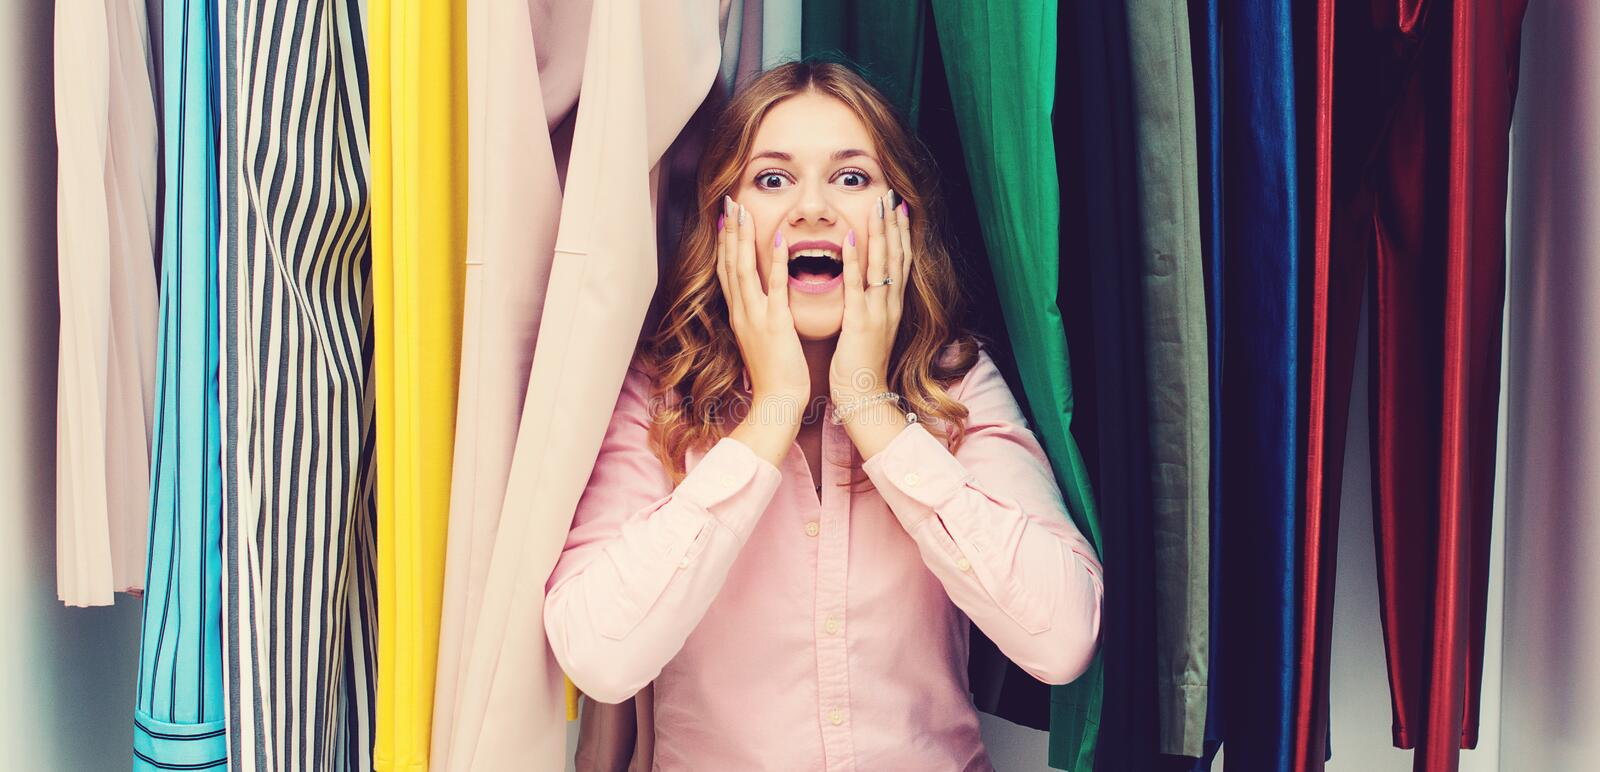 Woman choosing her fashion outfit. Sale, gifts, holidays and people concept. Girl thinking what to wear in front of many choices o. F clothes in organized royalty free stock image